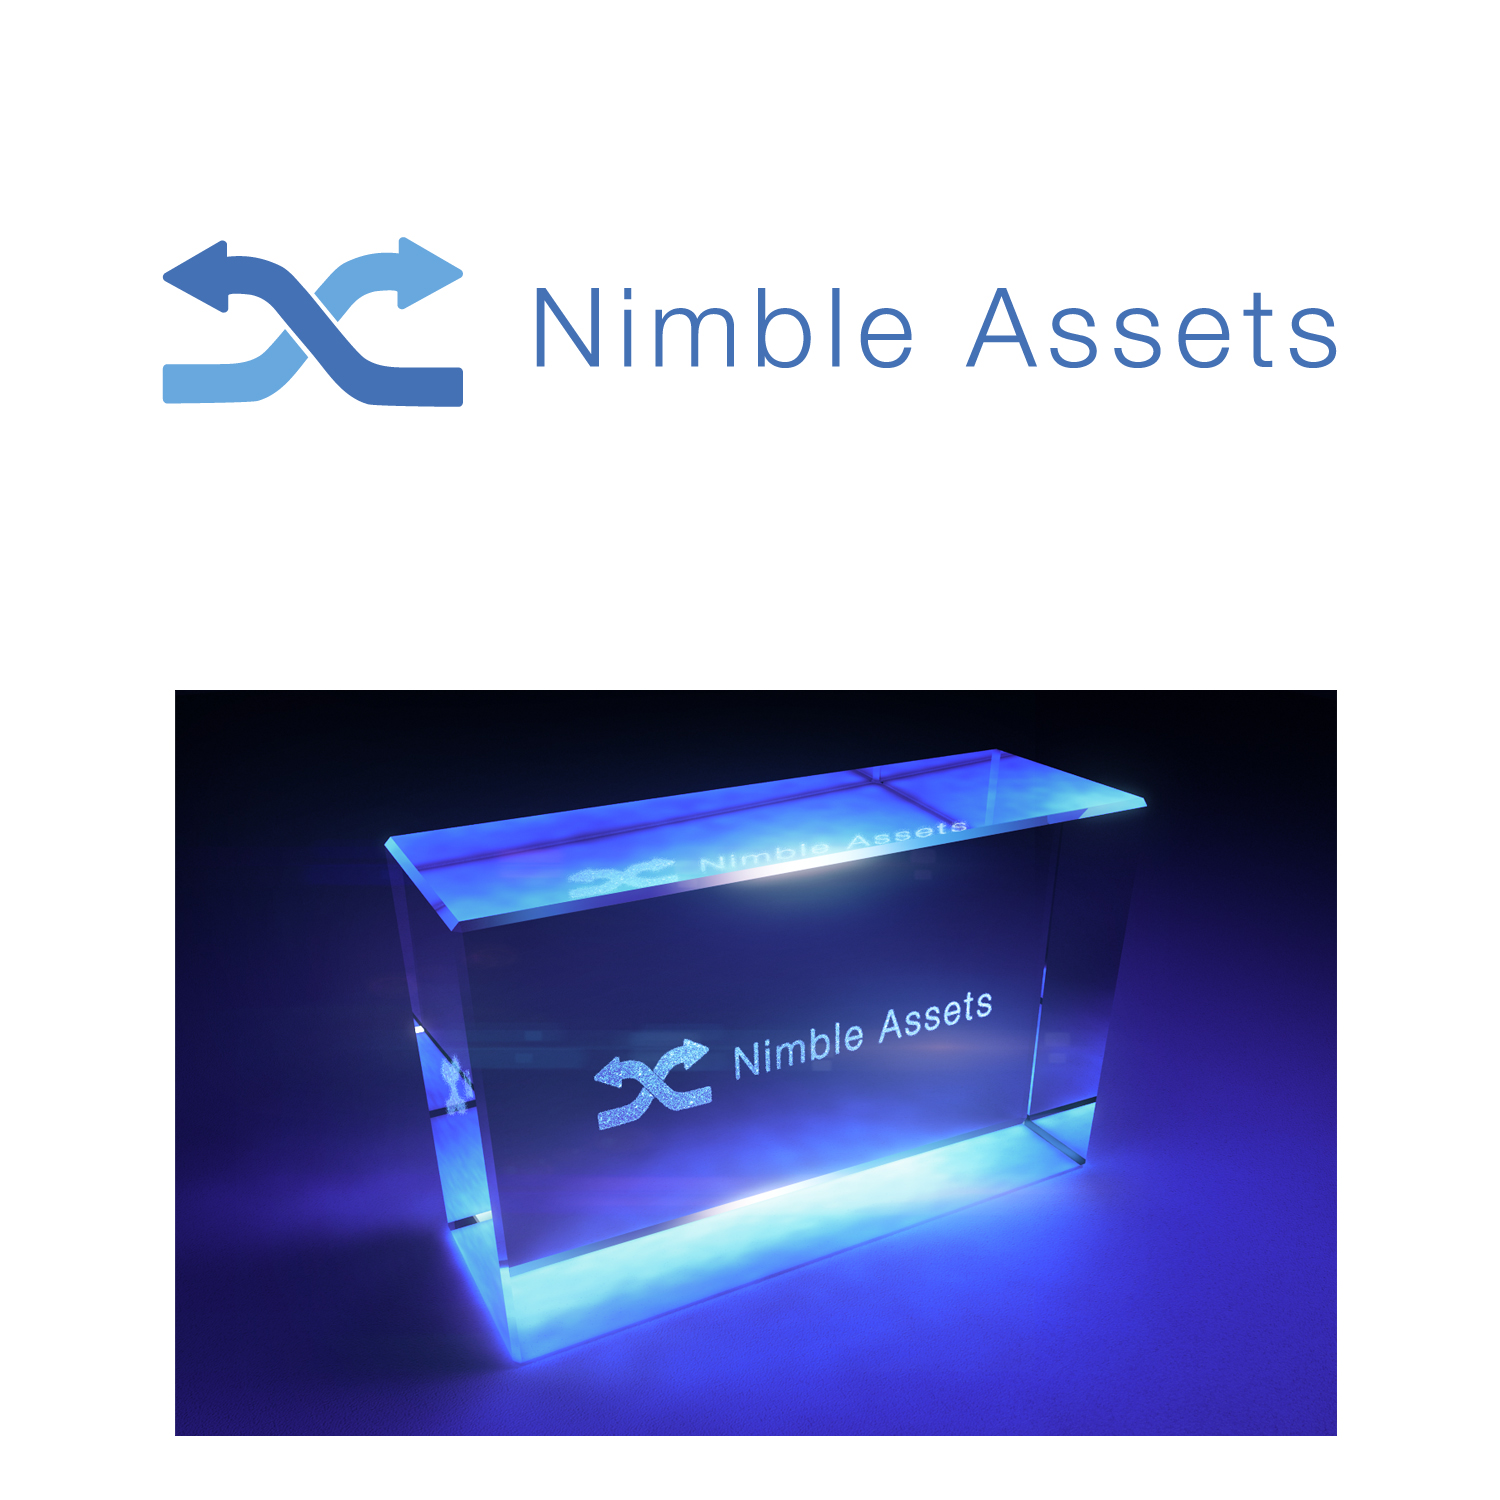 Modern, Serious, It Company Logo Design for Nimble Assets by